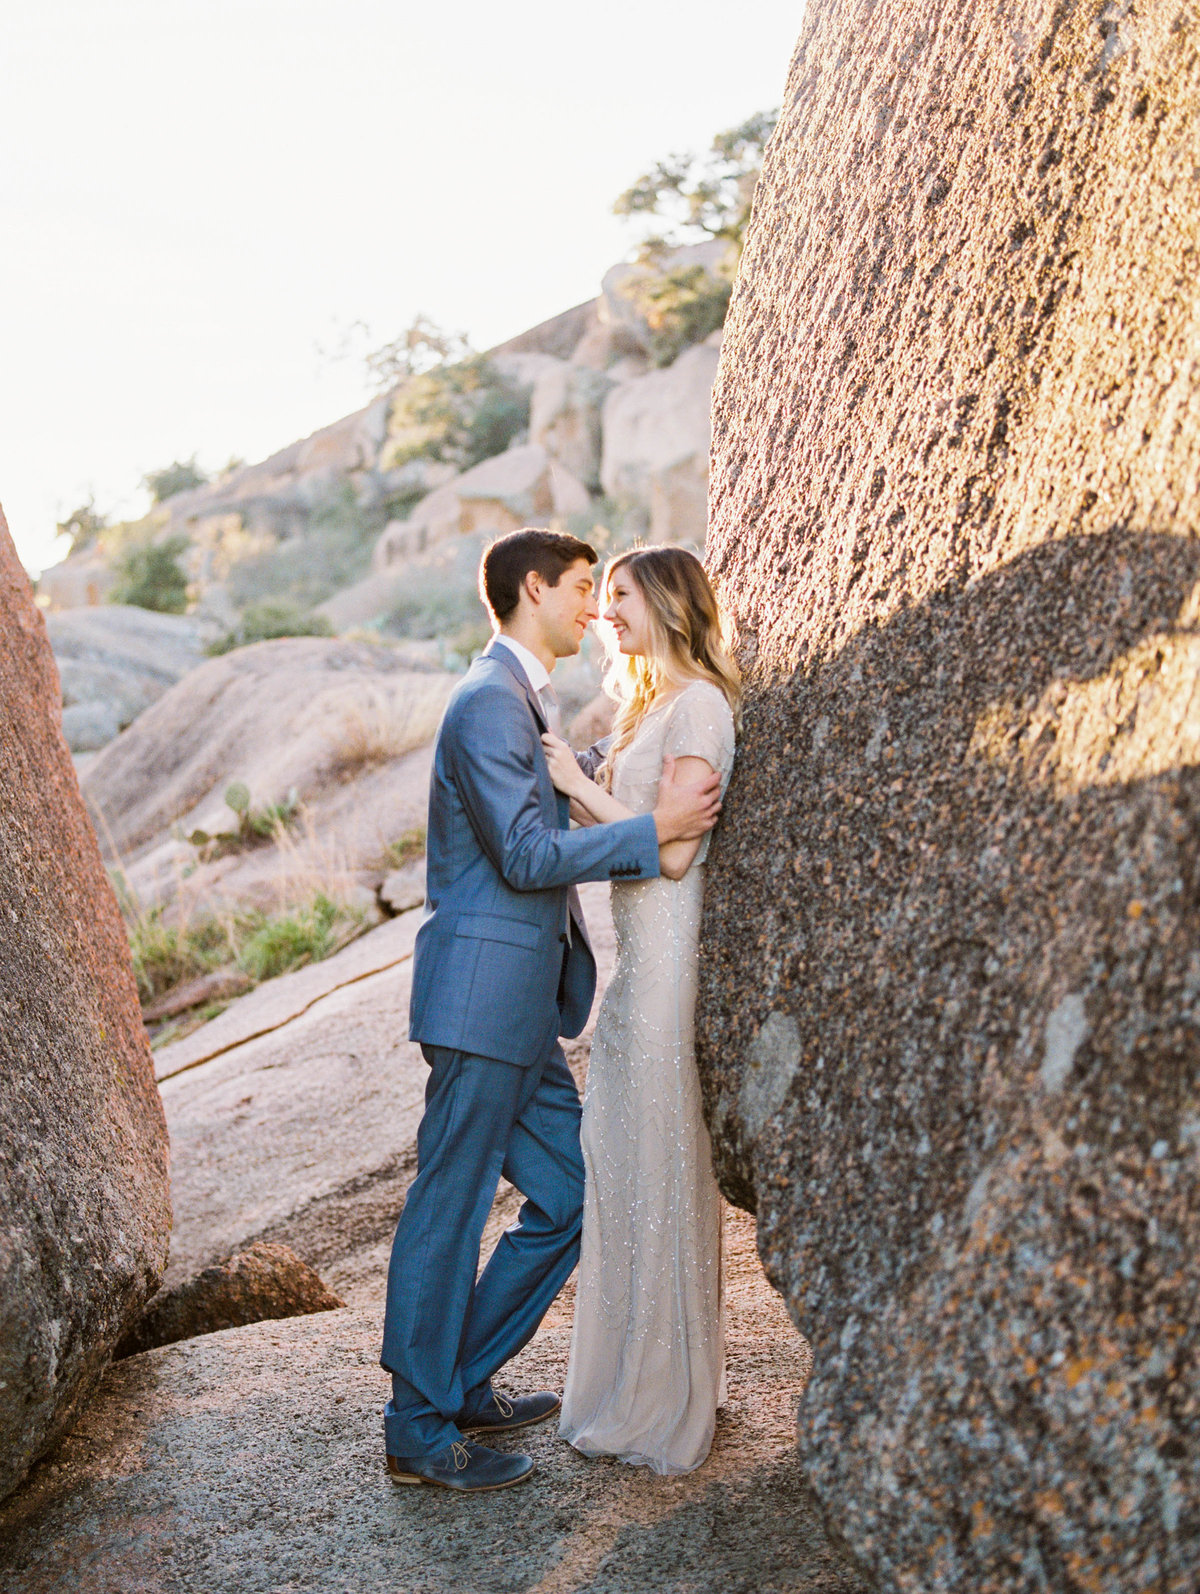 Couple embrace each other against rock - enchanted rock - engagement photos